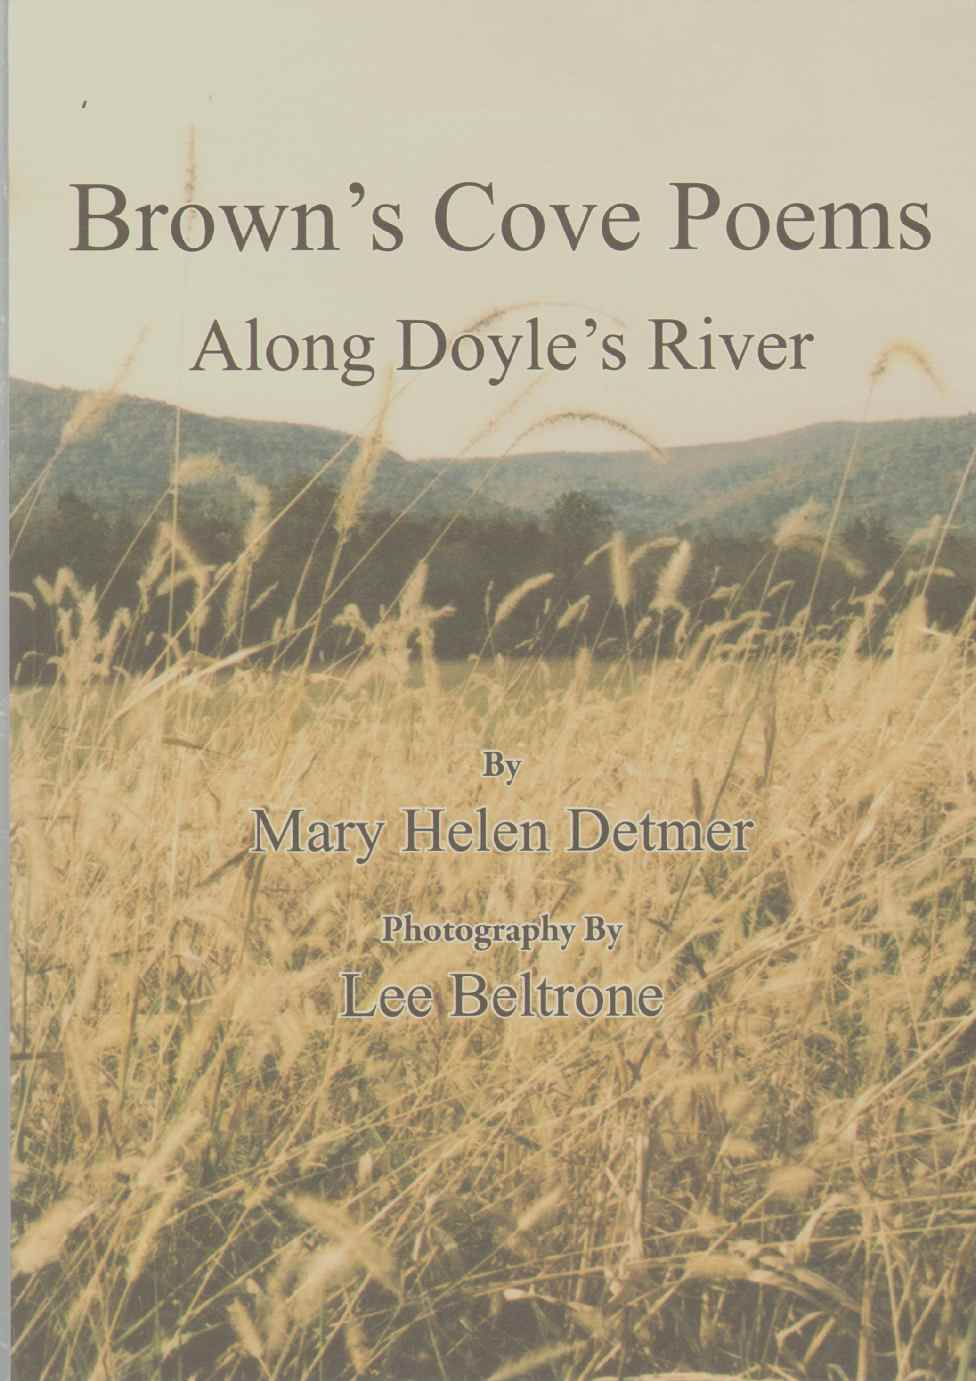 BROWN'S COVE POEMS Along Doyle's River, Detmer, Mary Helen